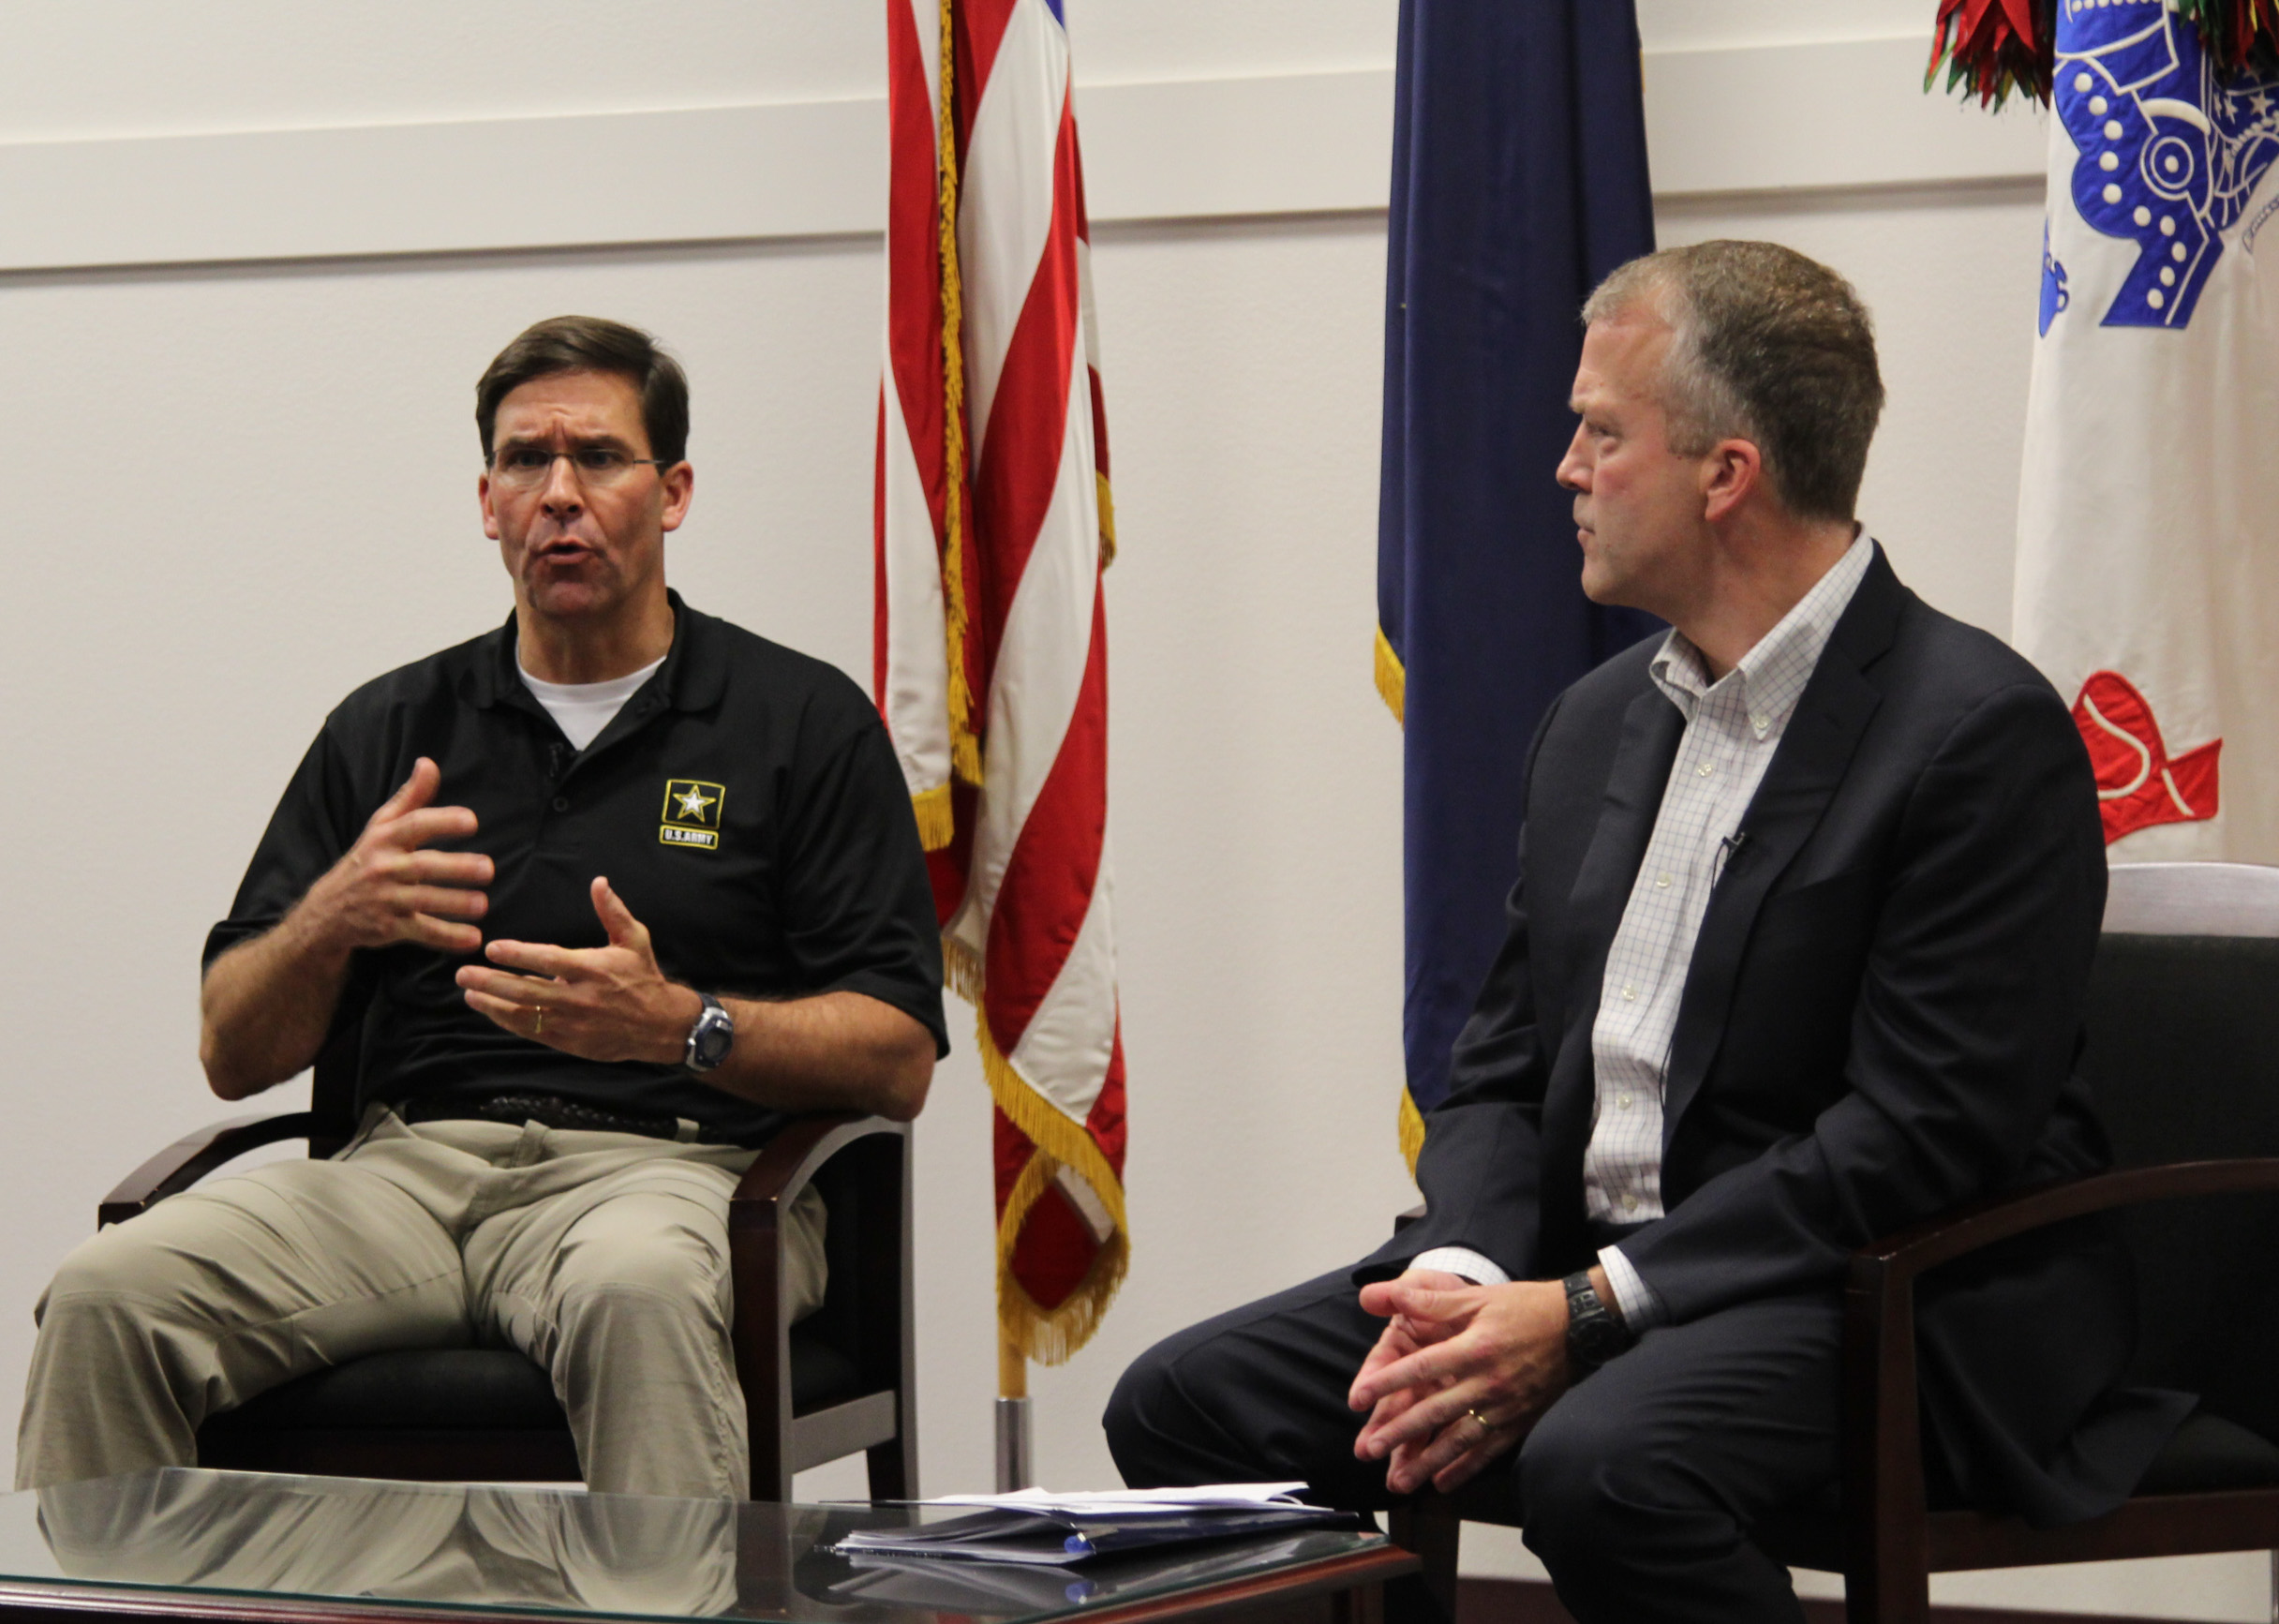 Army Secretary Mark Esper with Senator Dan Sullivan during a visit to Joint Base Elmendorf-Richardson. (Photo by Zachariah Hughes/Alaska Public Media)